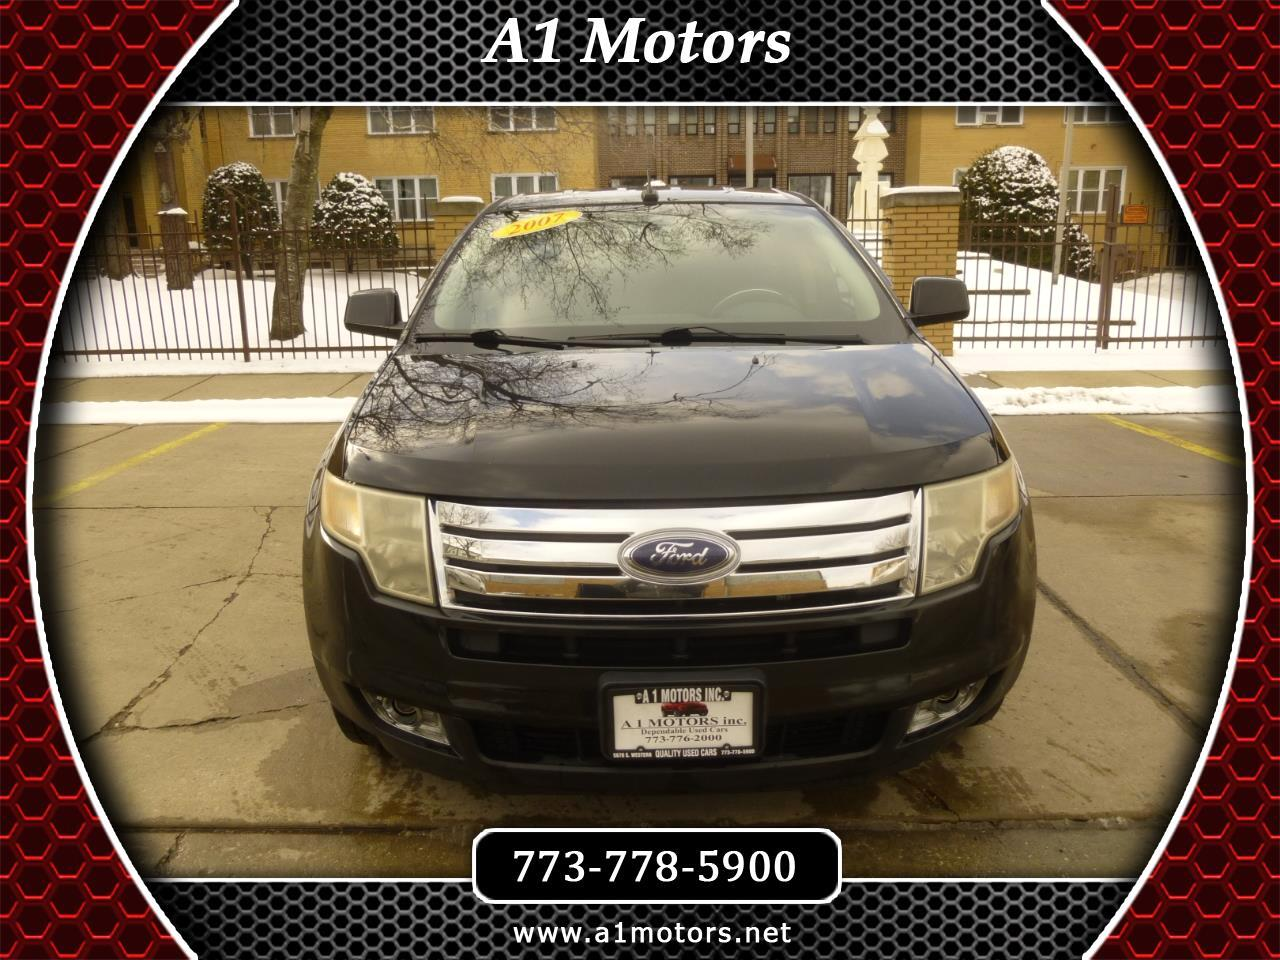 2007 ford edge  $5,995  inquiry apply online photos 26  details